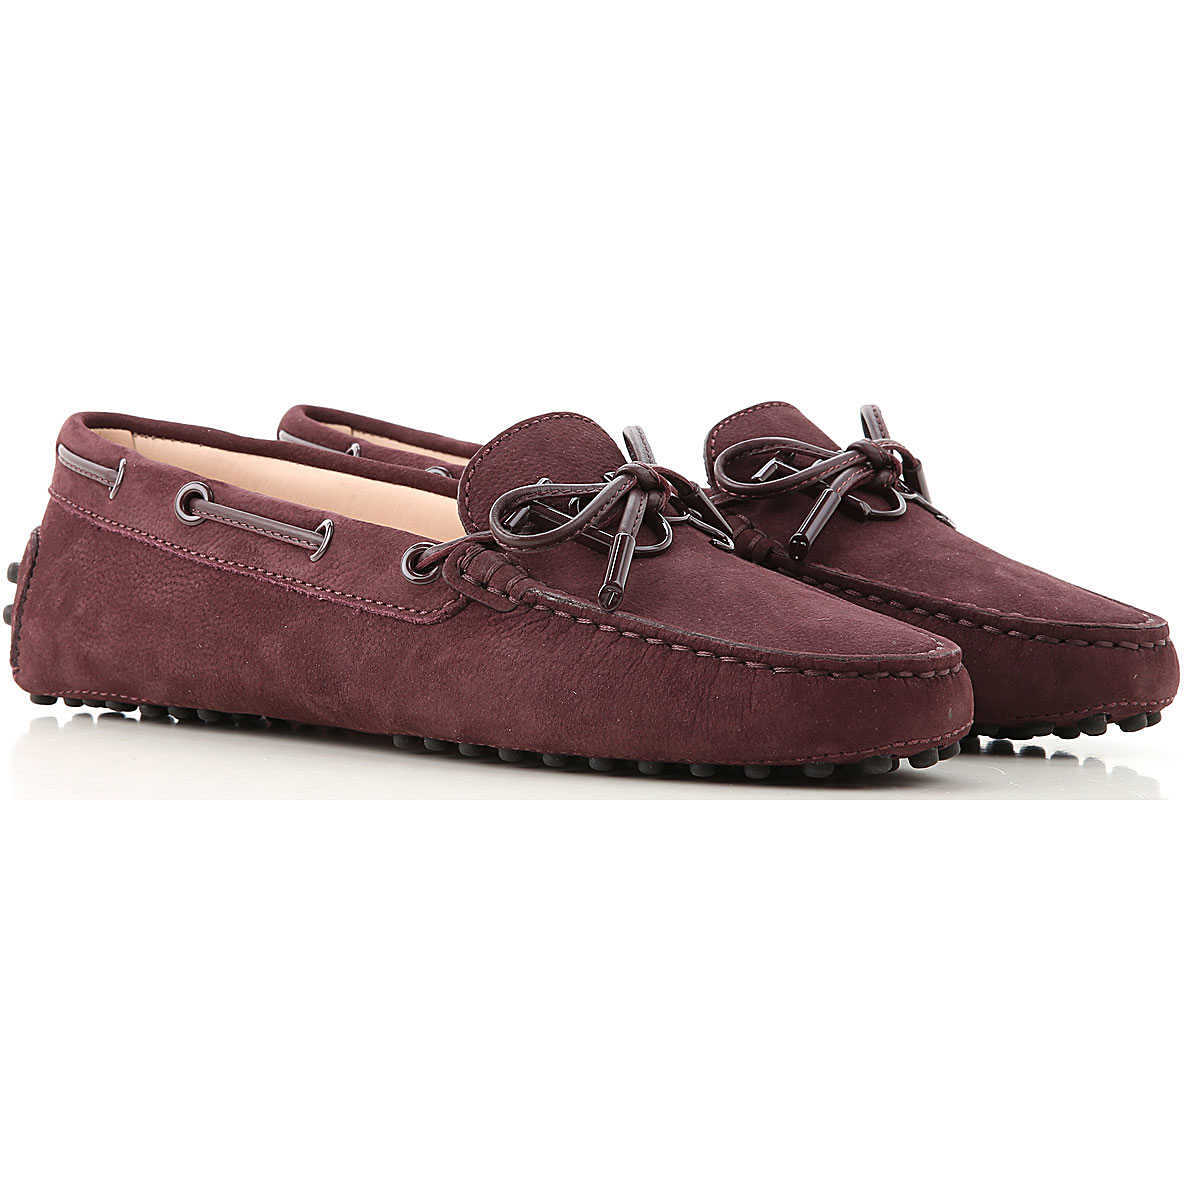 Tods Loafers for Women Wine DK - GOOFASH - Womens FLAT SHOES